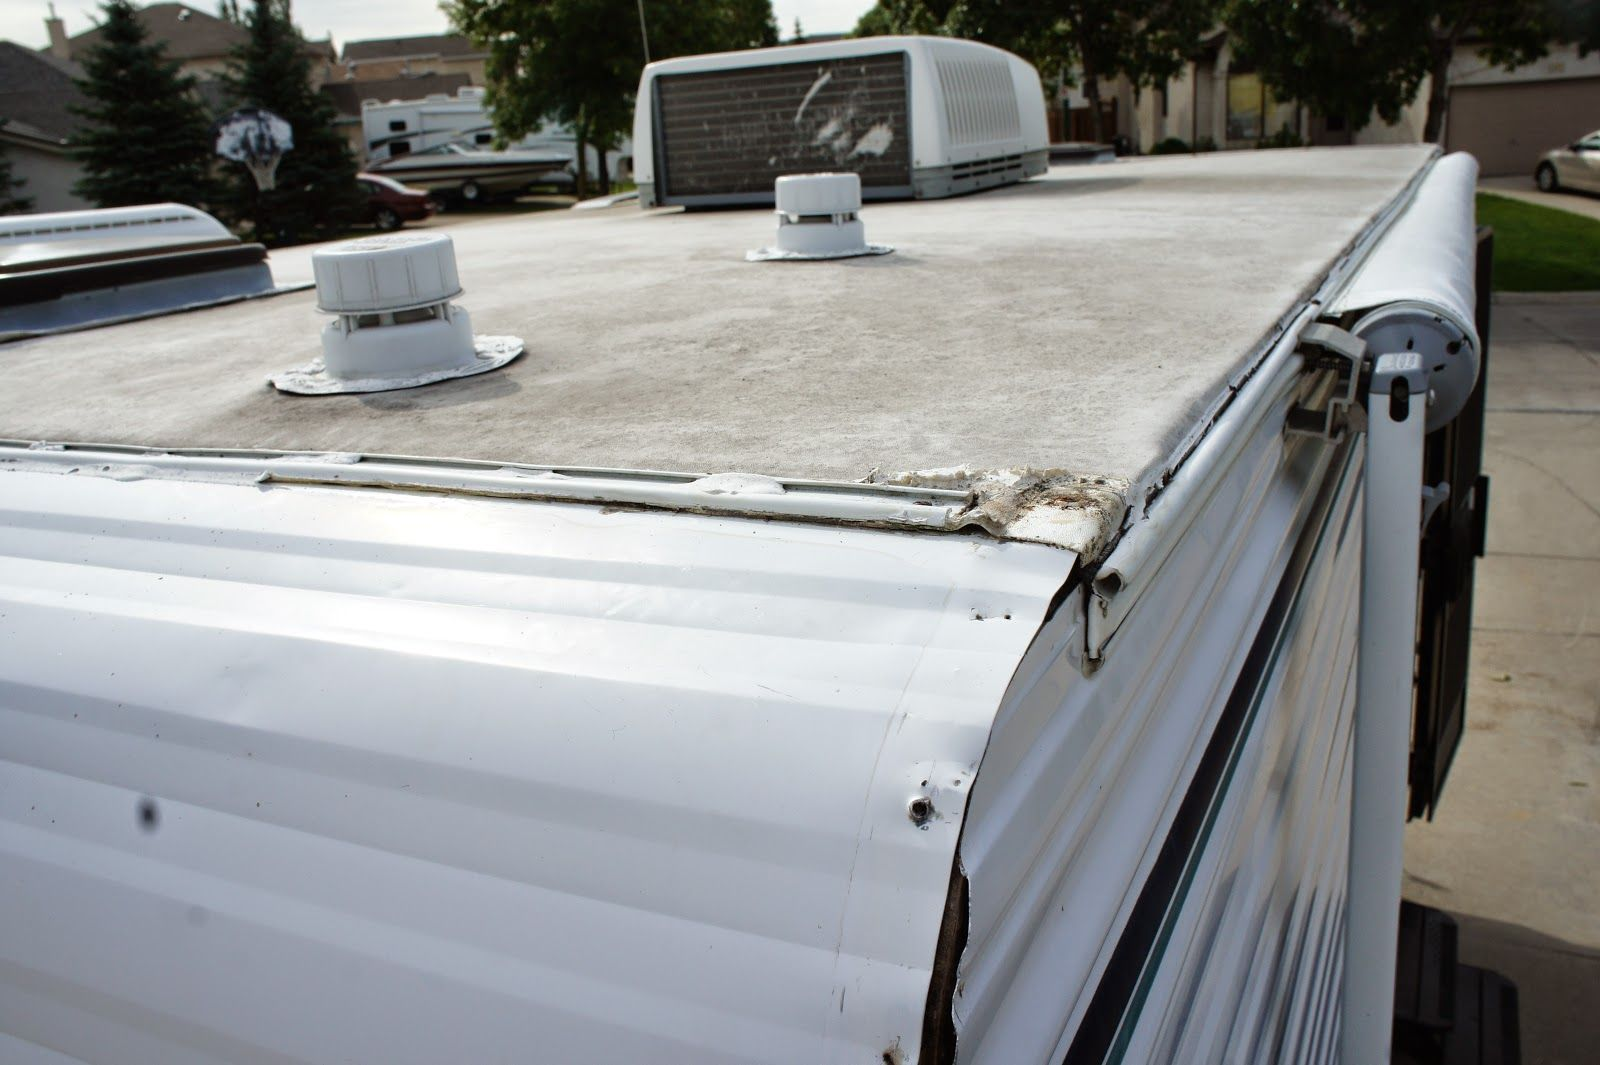 I Started By Fixing The Roof And While I Was Up On The Roof I Noticed The Same Crappy Caulk Job Not Only On The Terminator Bar Roof Maintenance Roof Repair